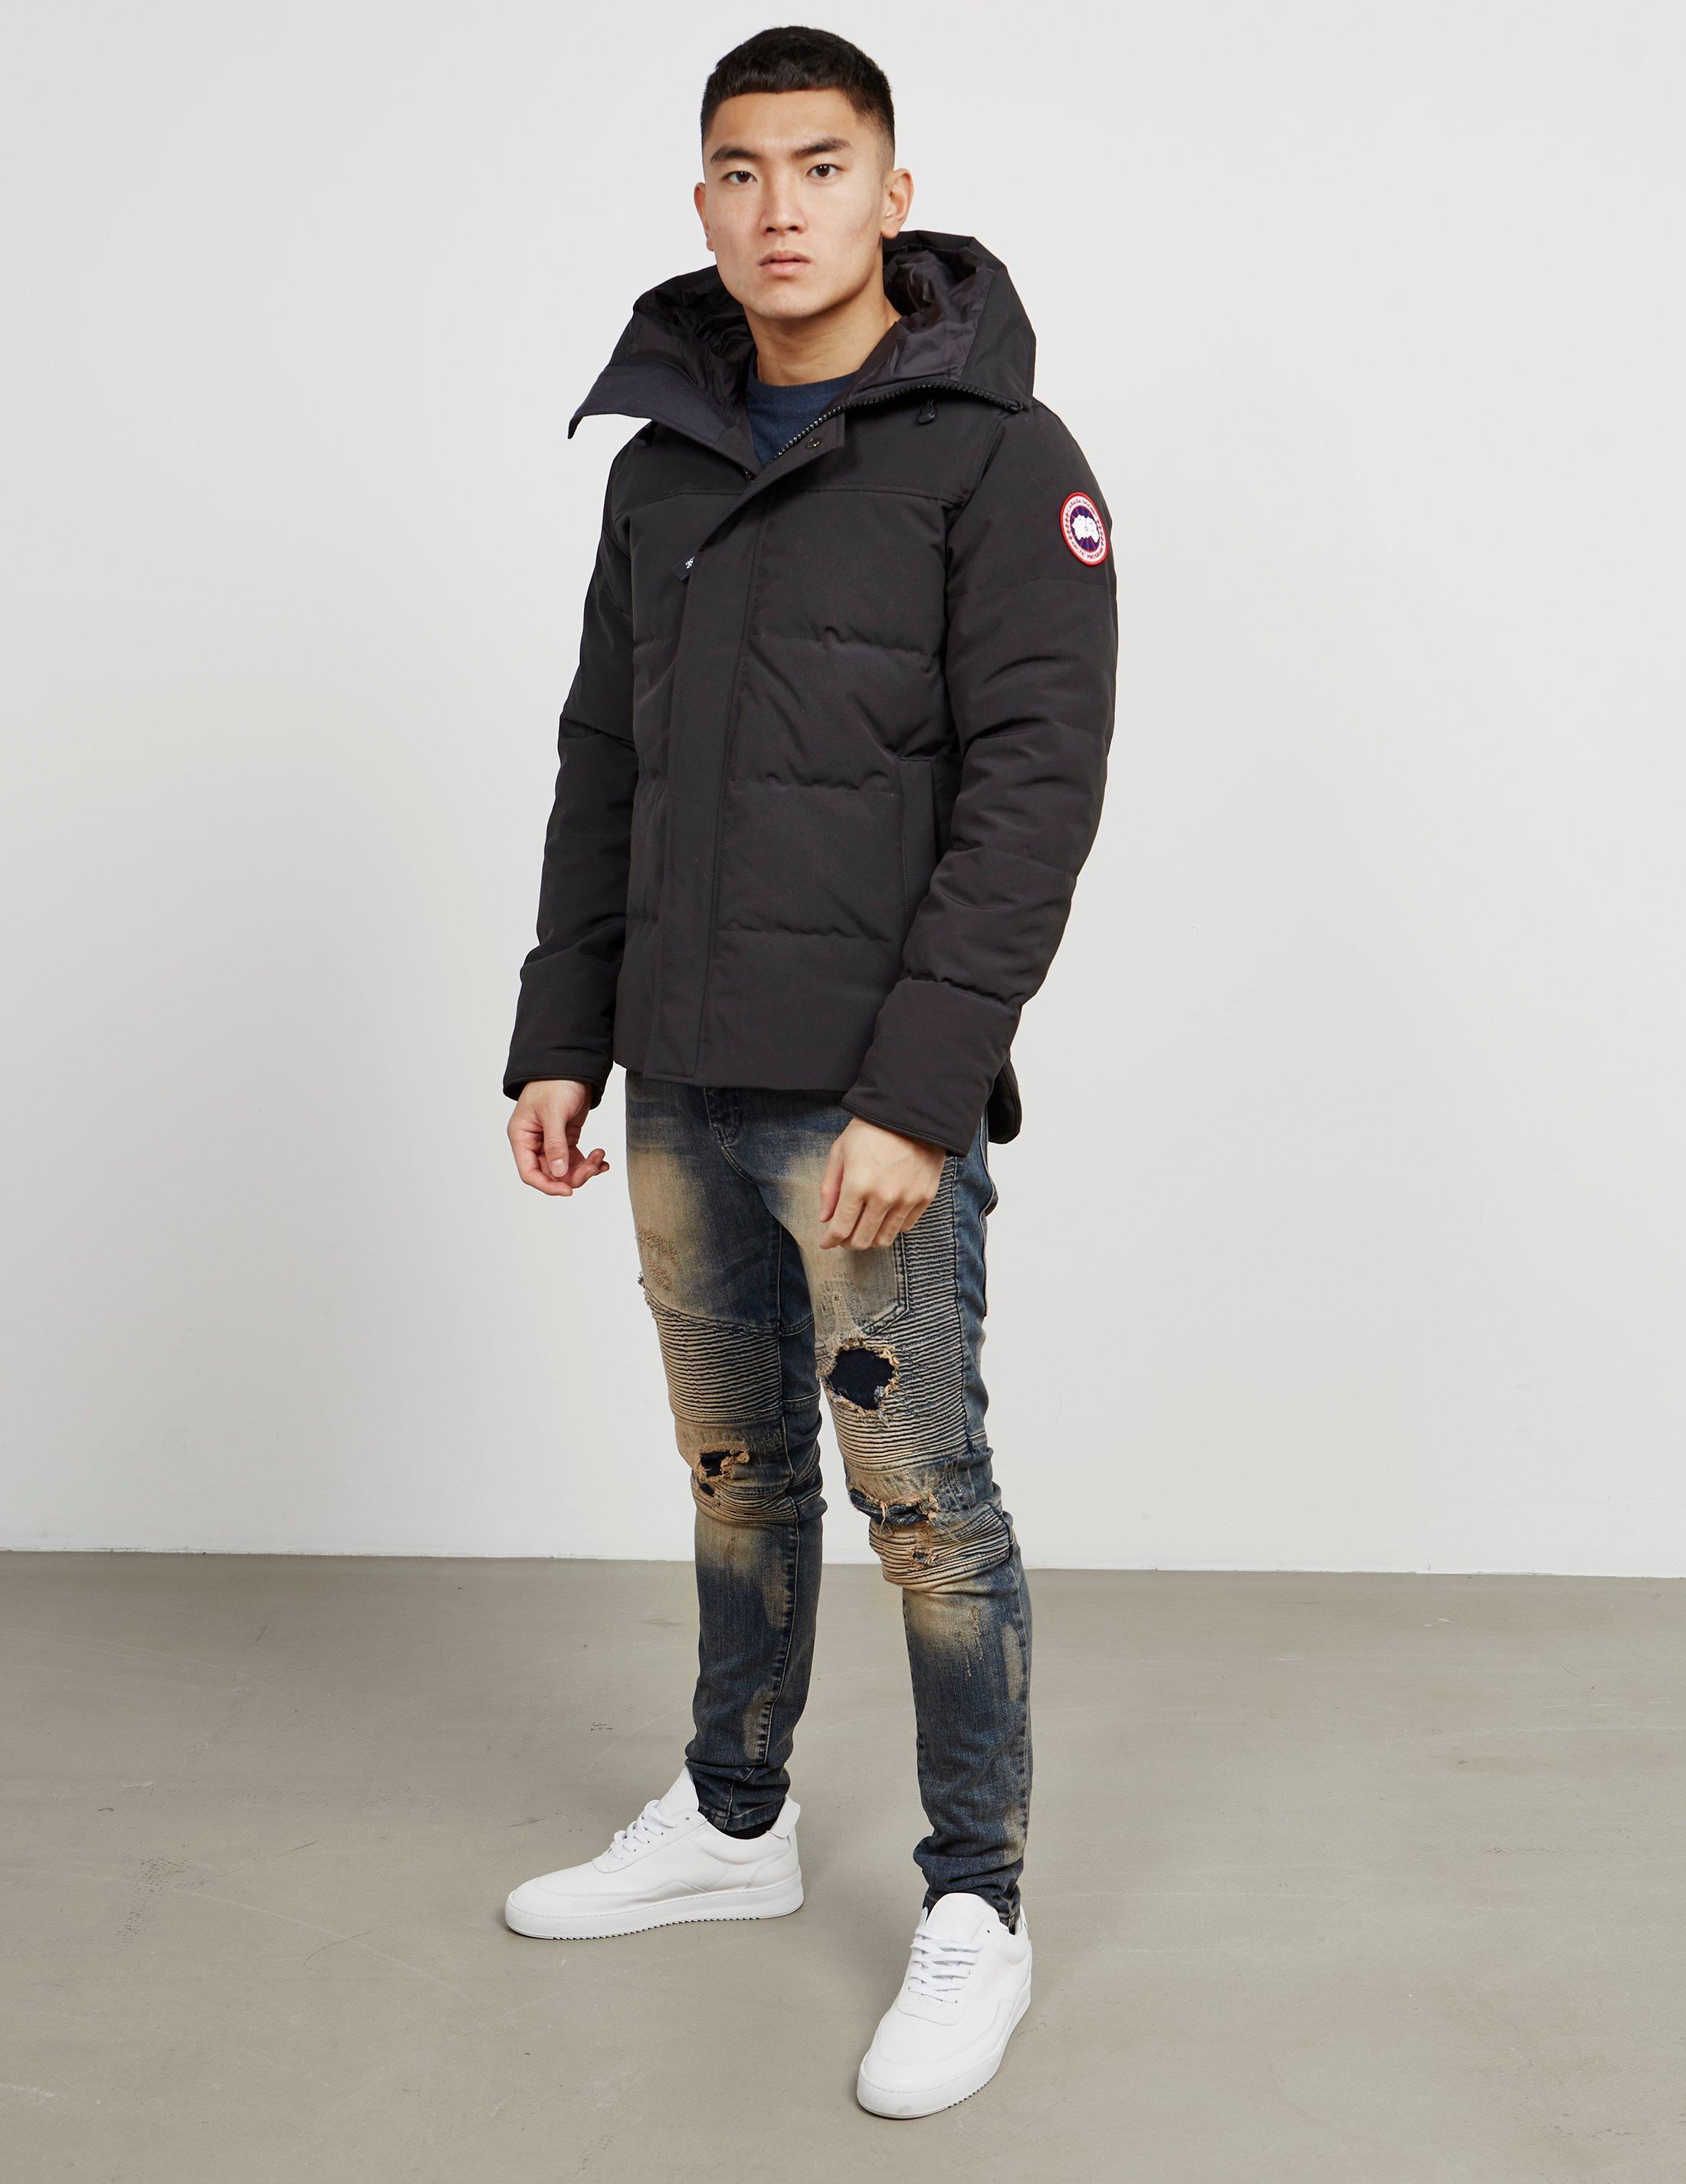 7c6094dad08c Canada Goose Macmillan Padded Parka Jacket Black in Black for Men - Save  20% - Lyst